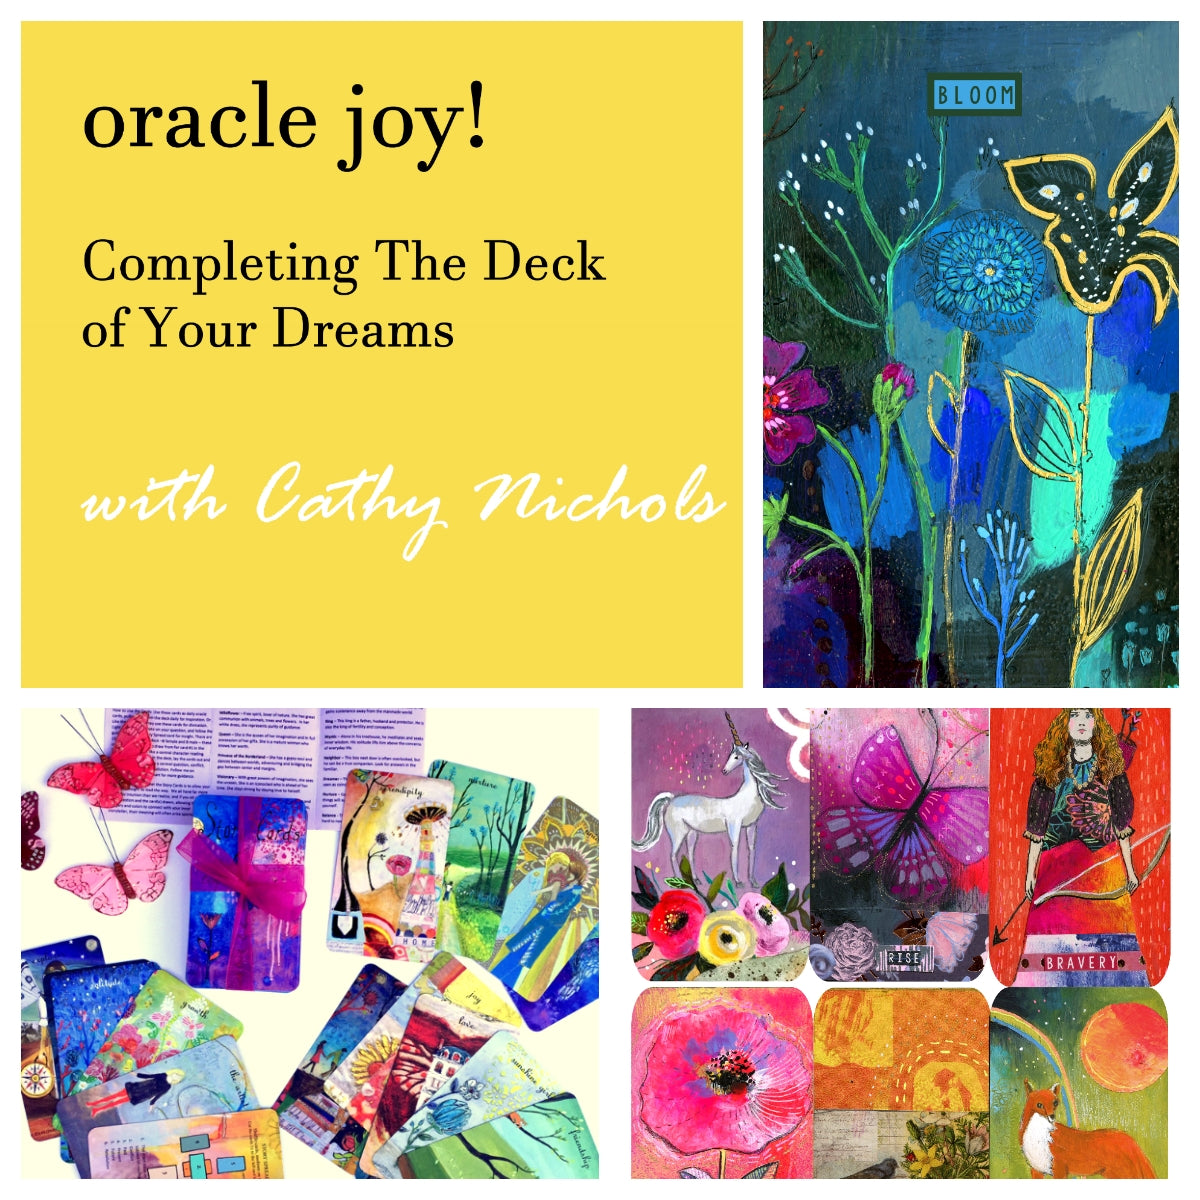 Oracle Joy! - Completing the Deck of Your Dreams